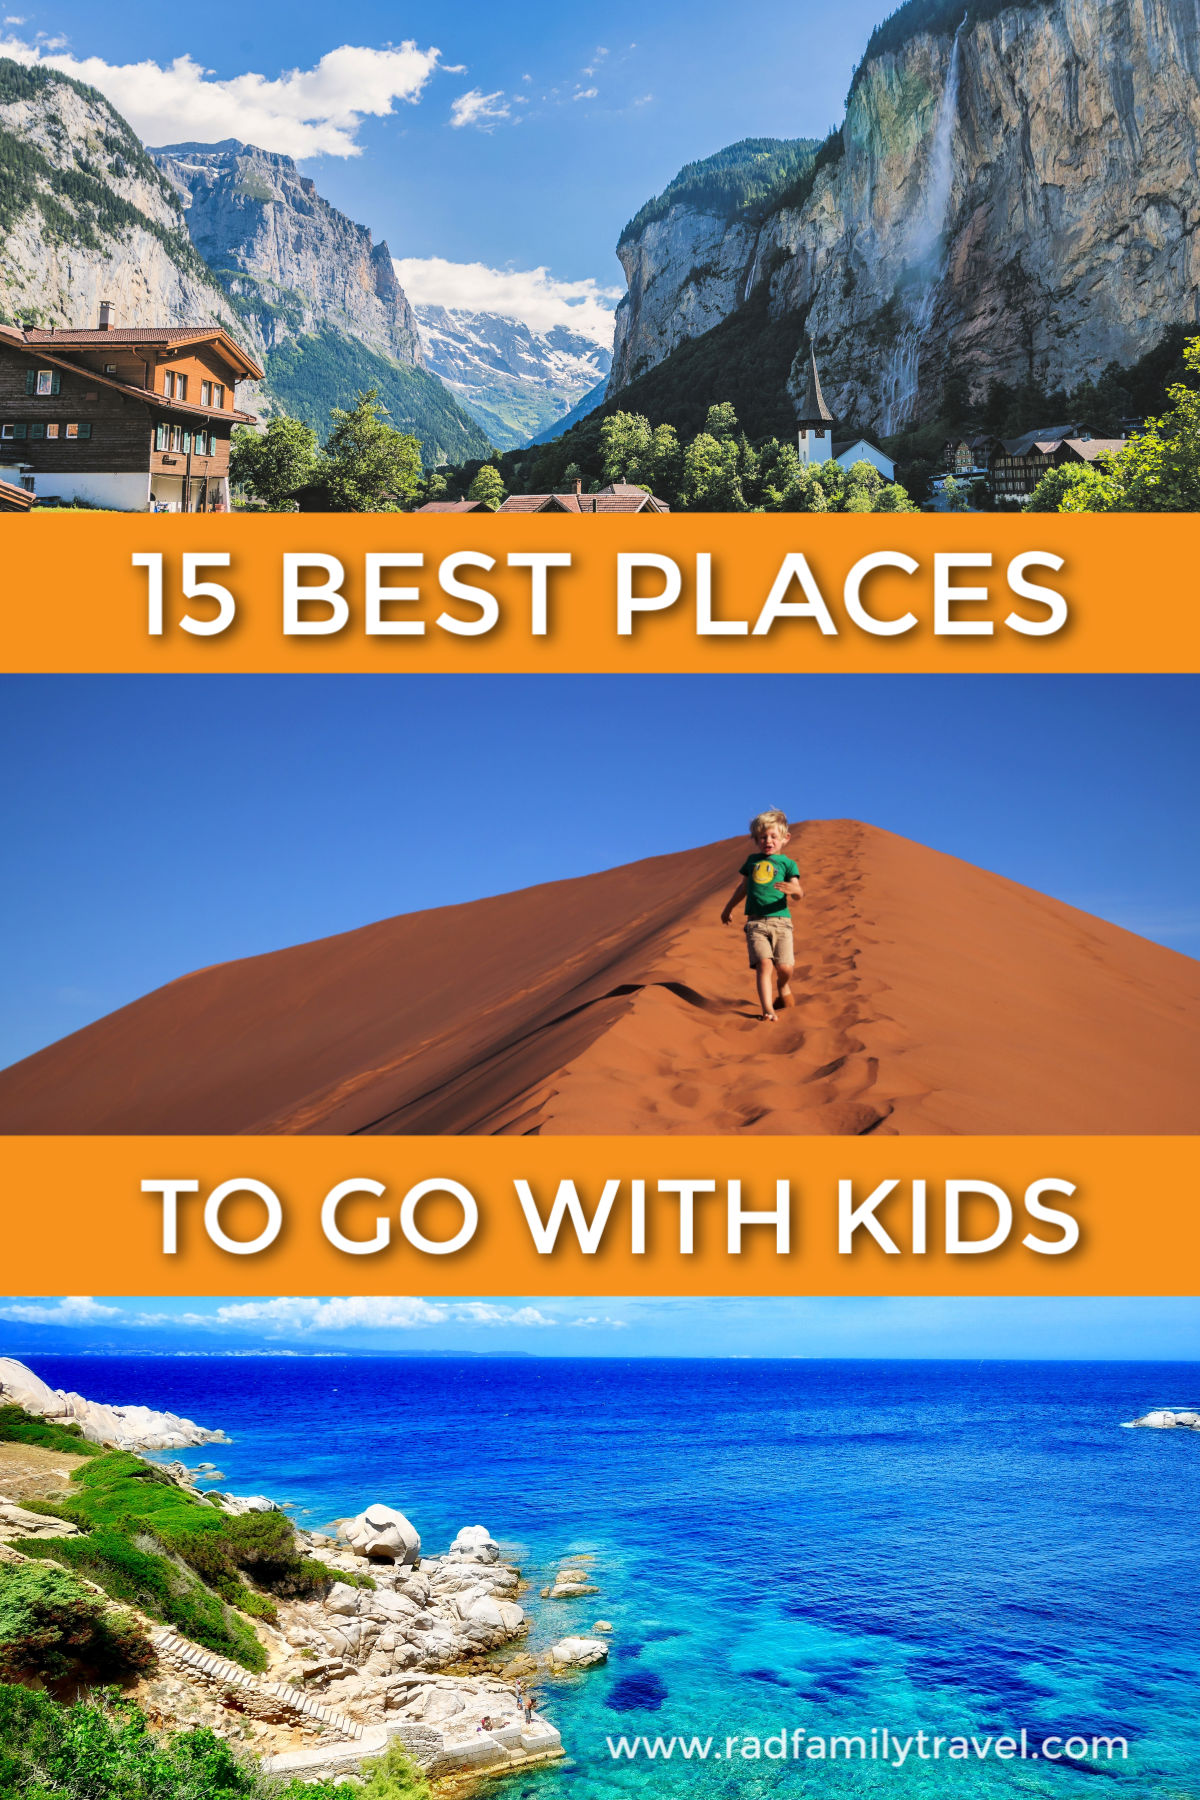 15 best places to go with kids